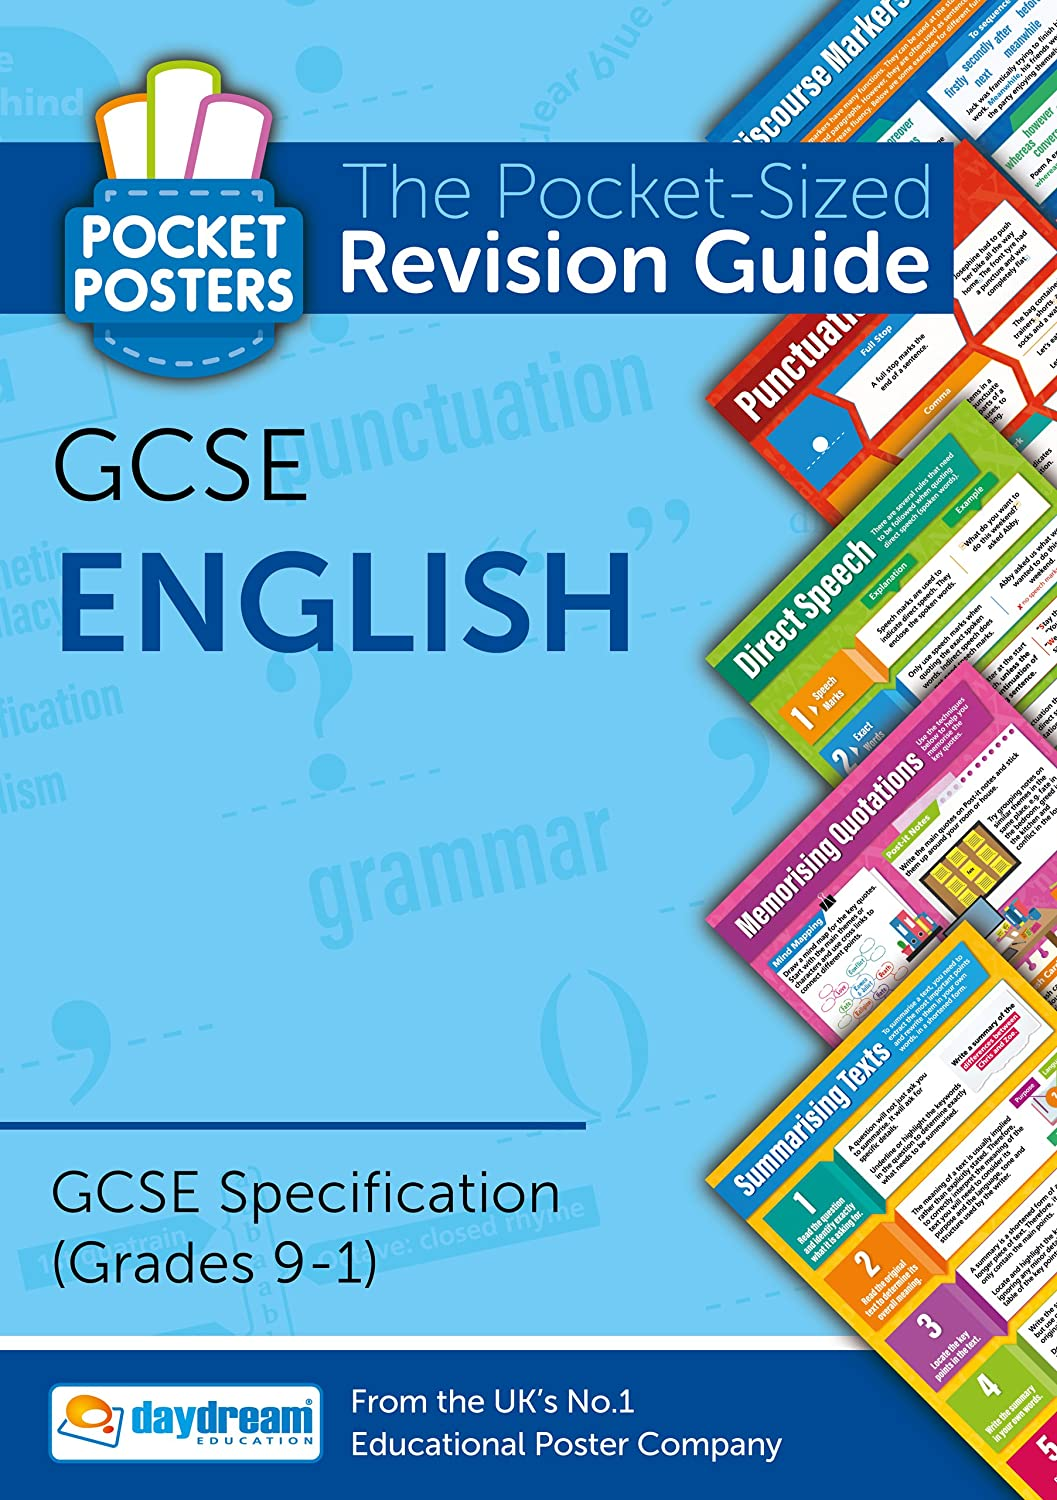 Poster design ks3 - Gcse English Pocket Posters The Pocket Sized Revision Guide